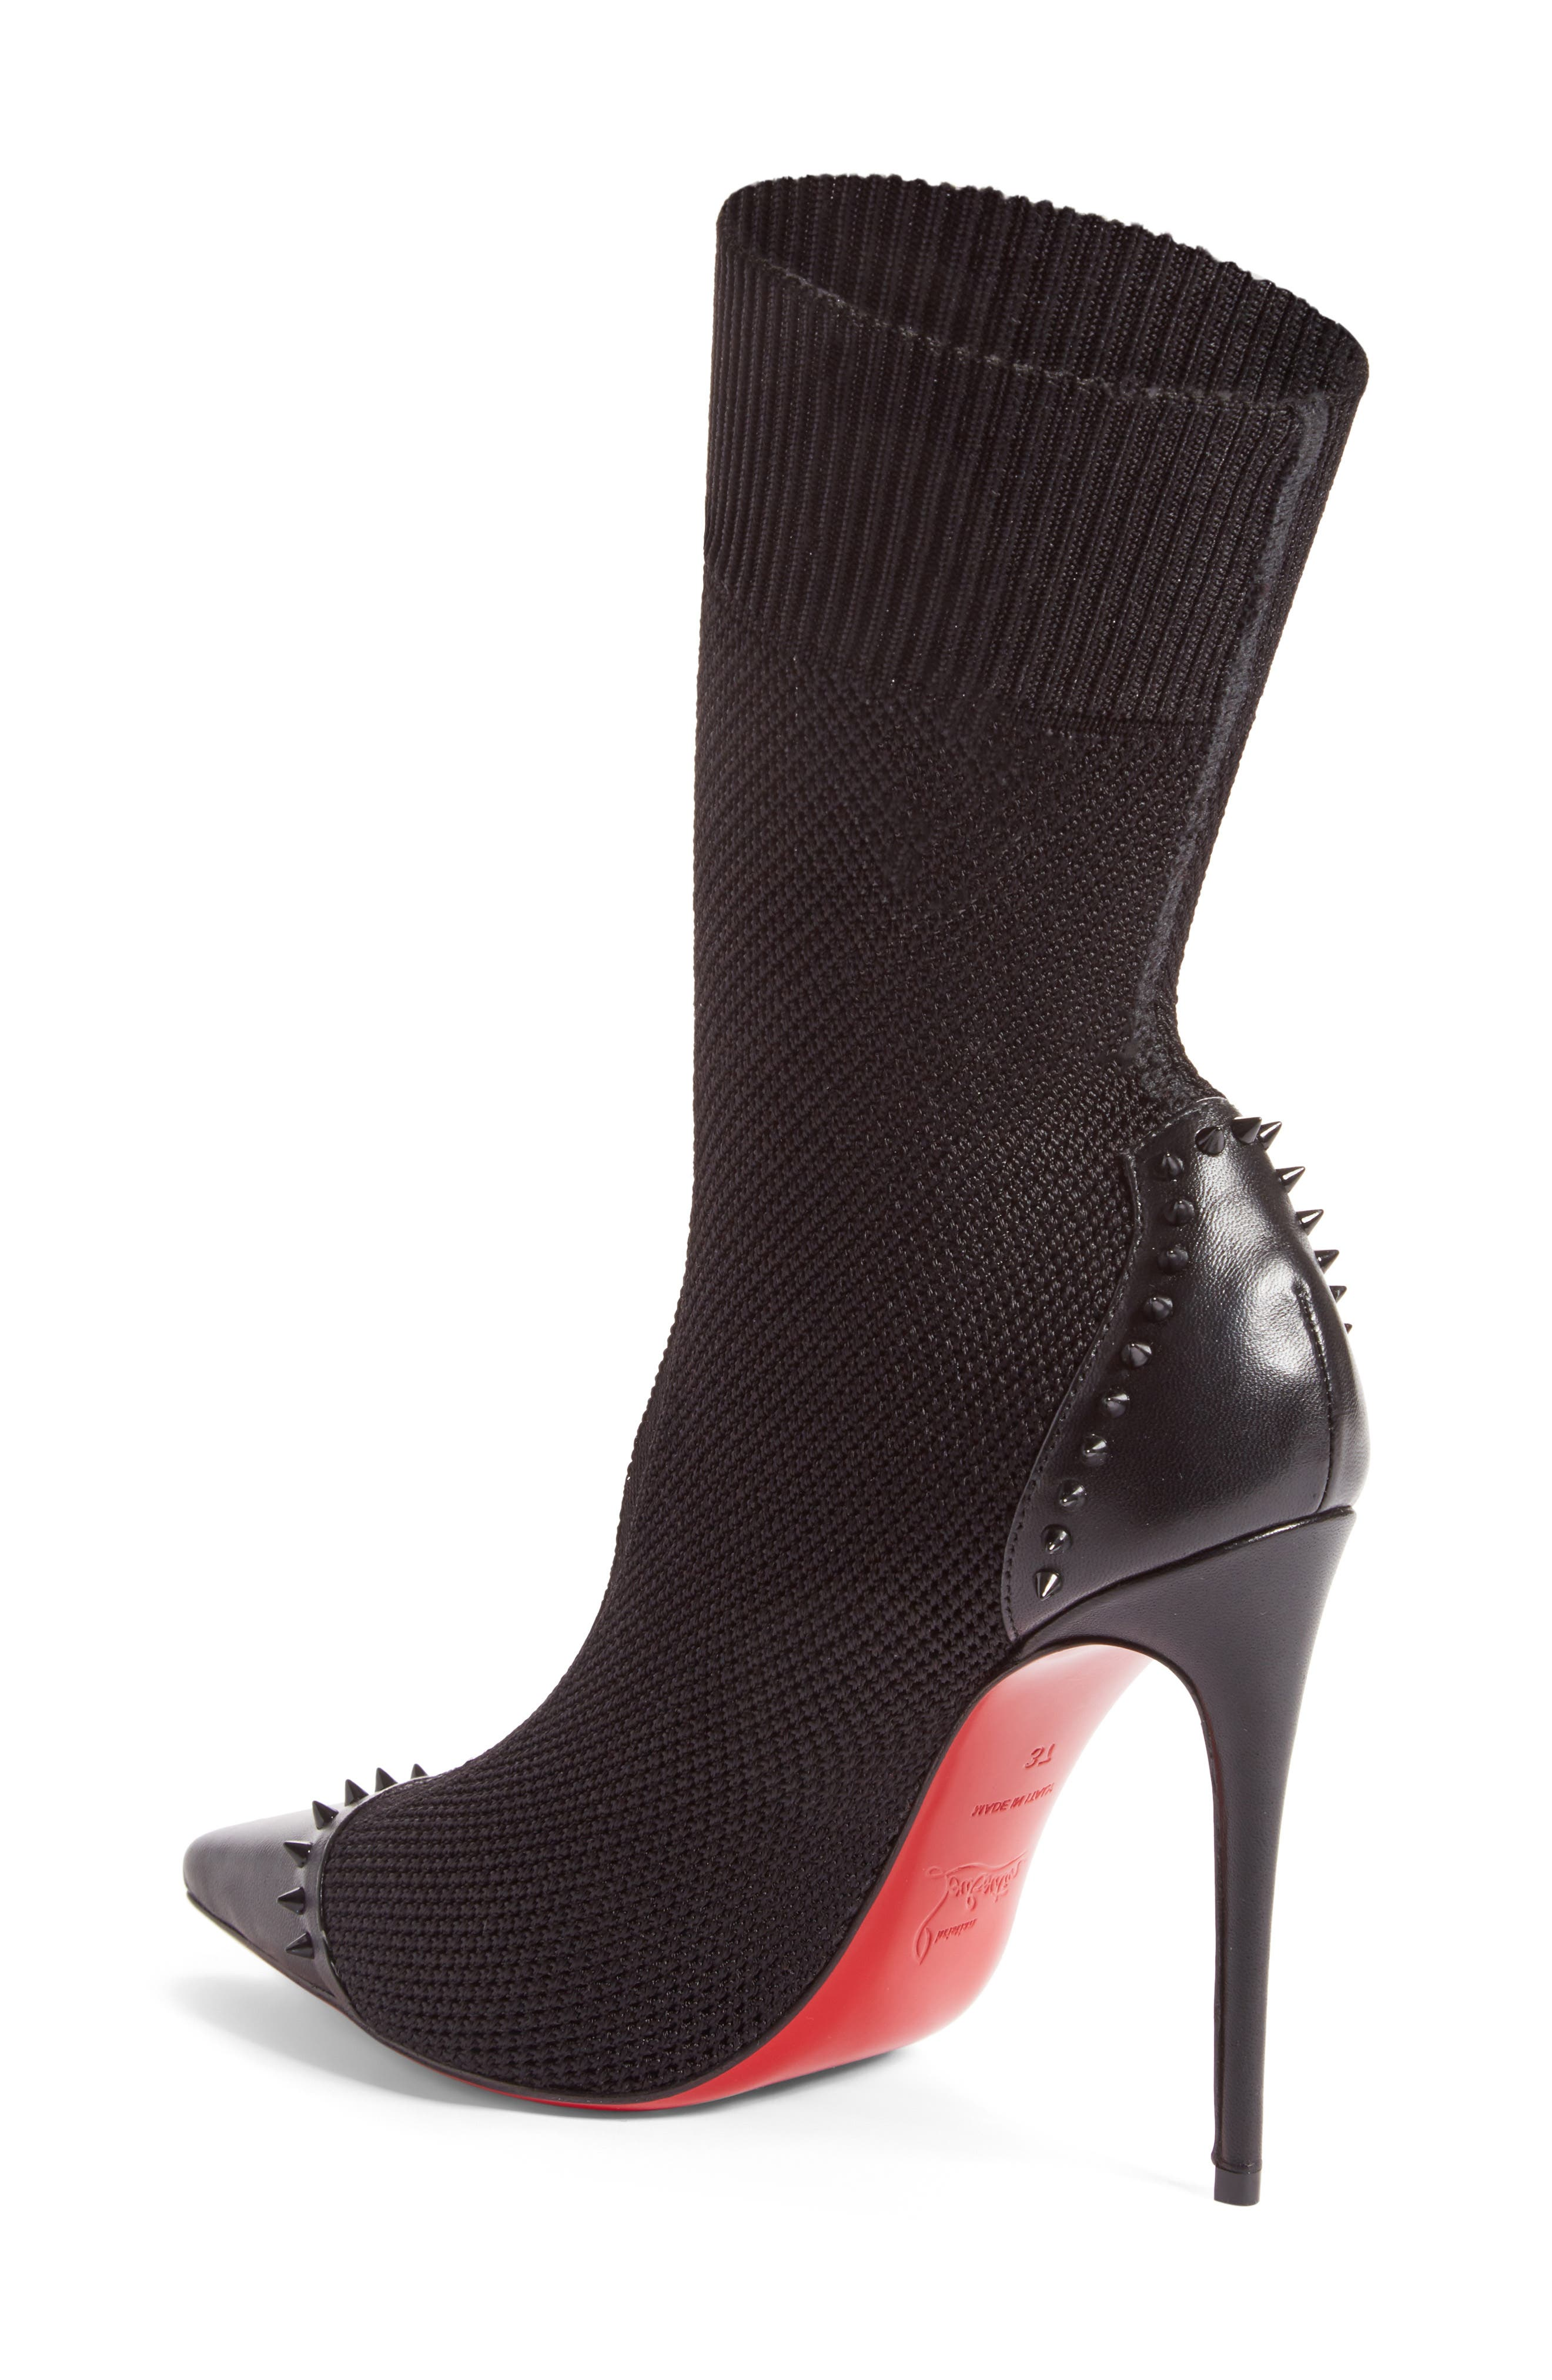 Dovi Dova Spiked Pointy Toe Bootie,                             Alternate thumbnail 2, color,                             001